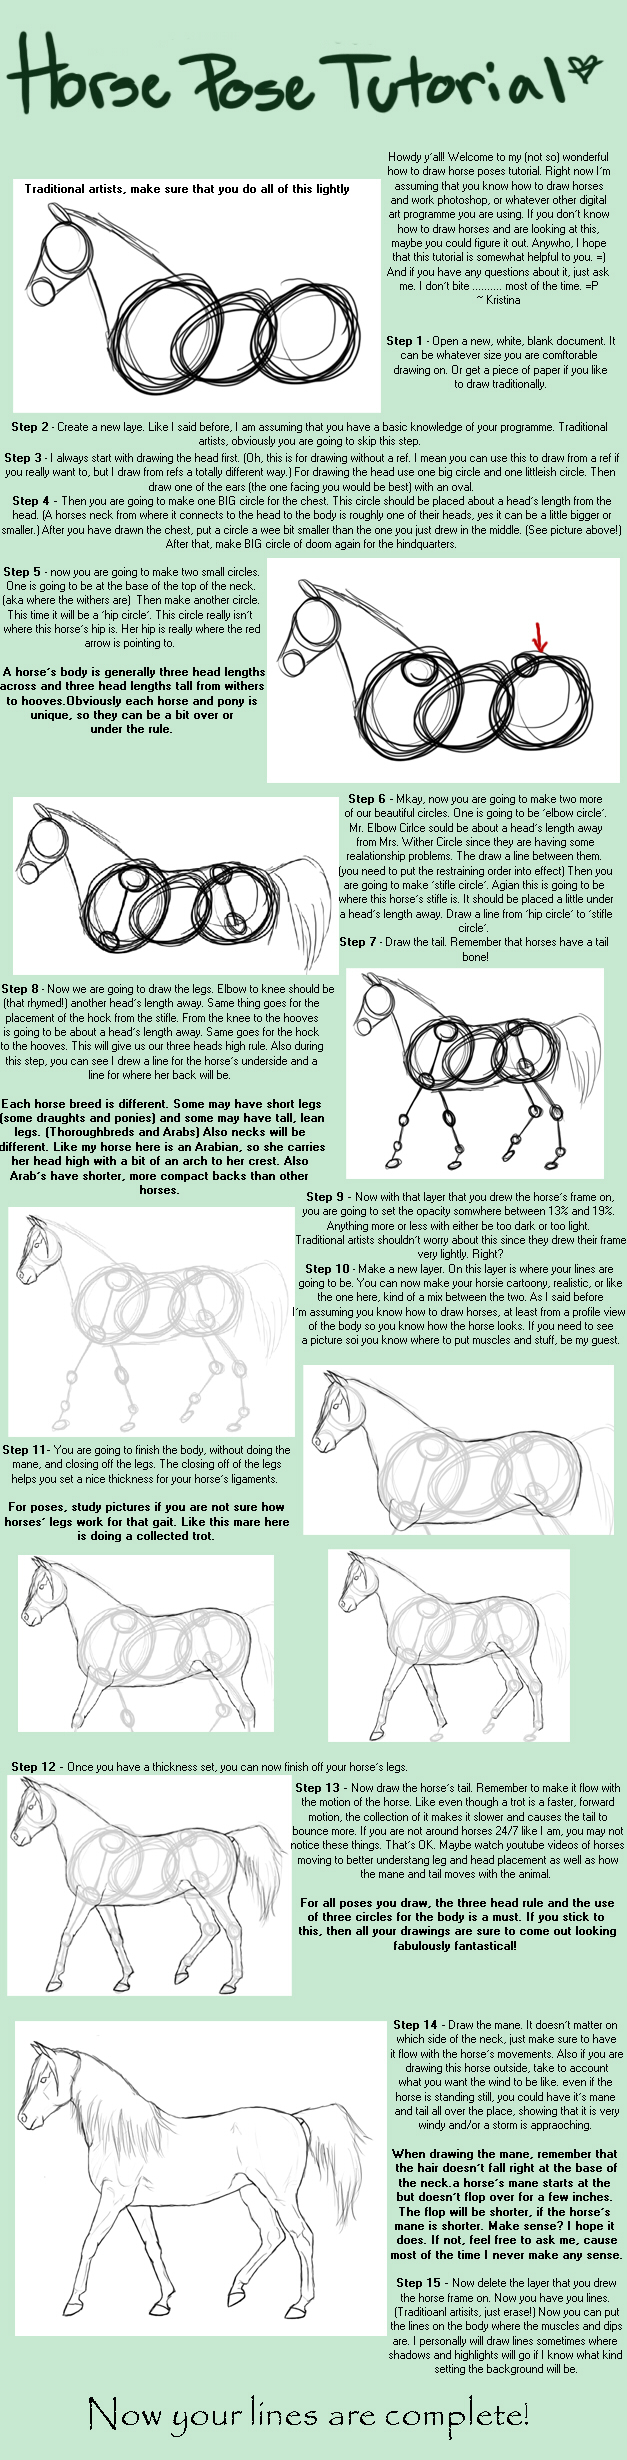 Horse Pose Tutorial by Abiadura